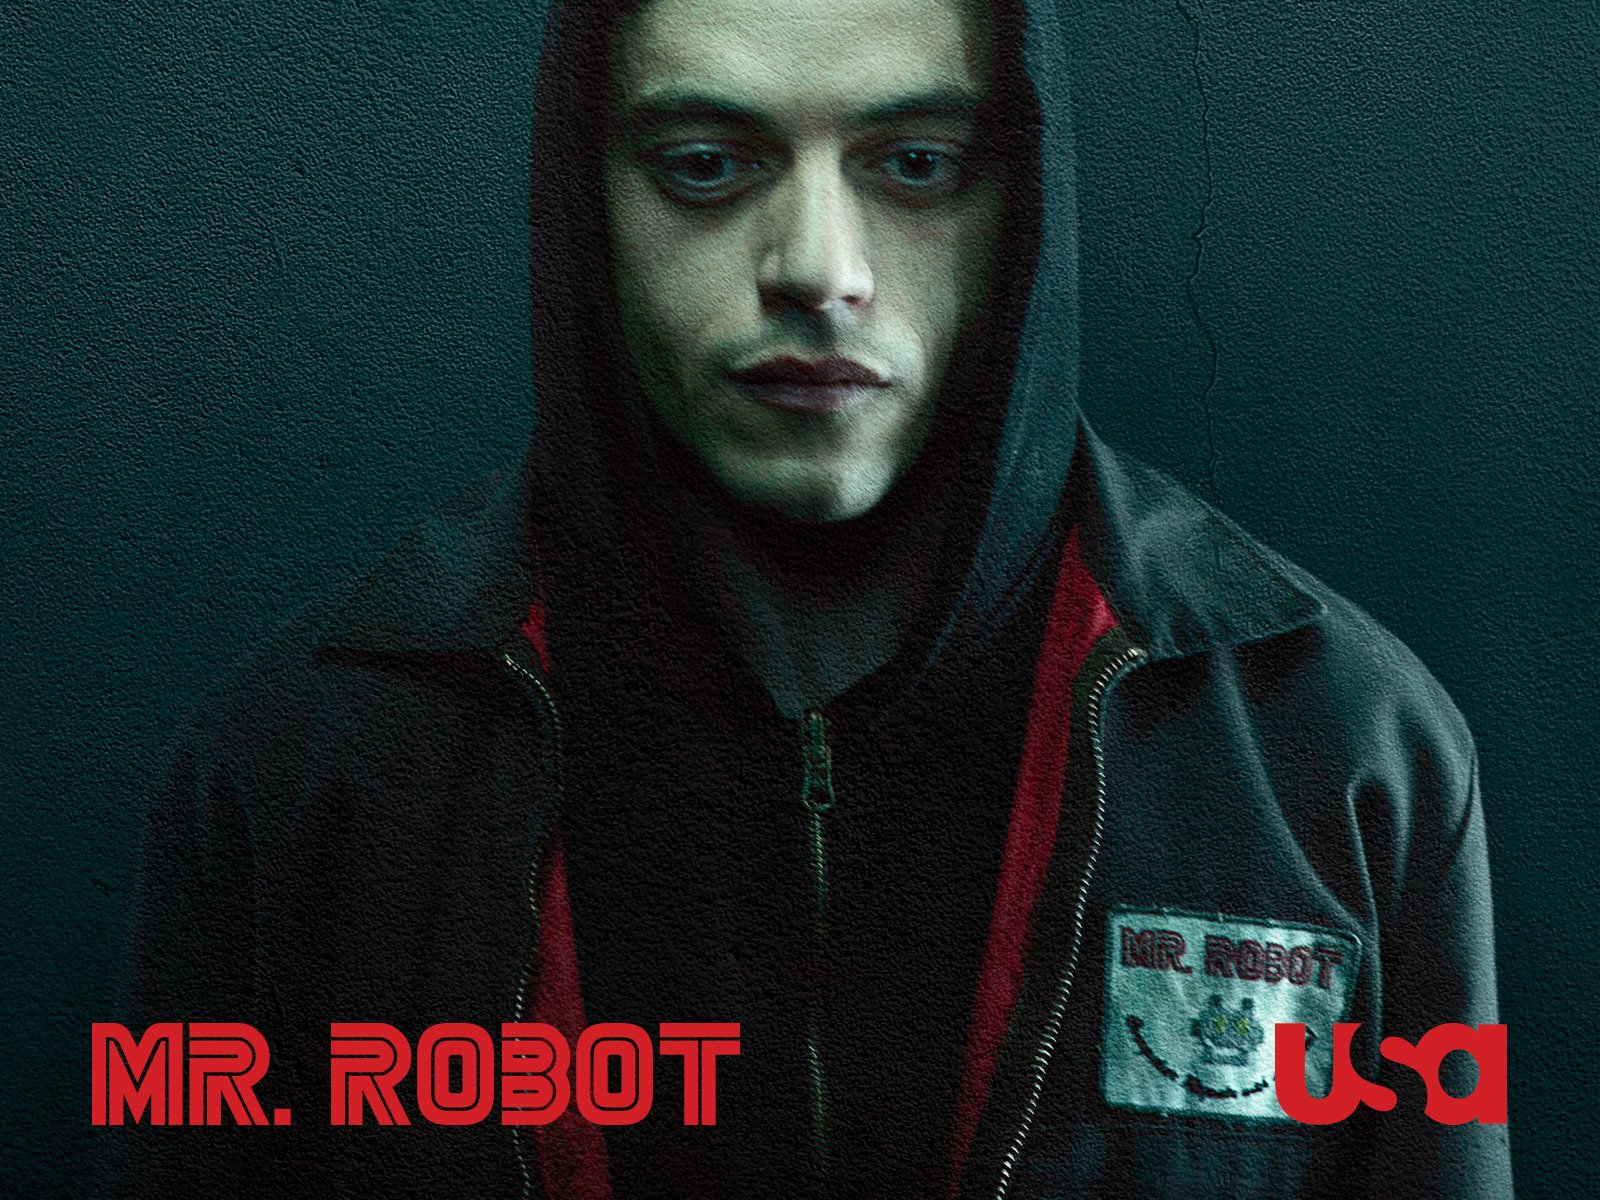 Mr Robot Season 2 Episode 1 Stream